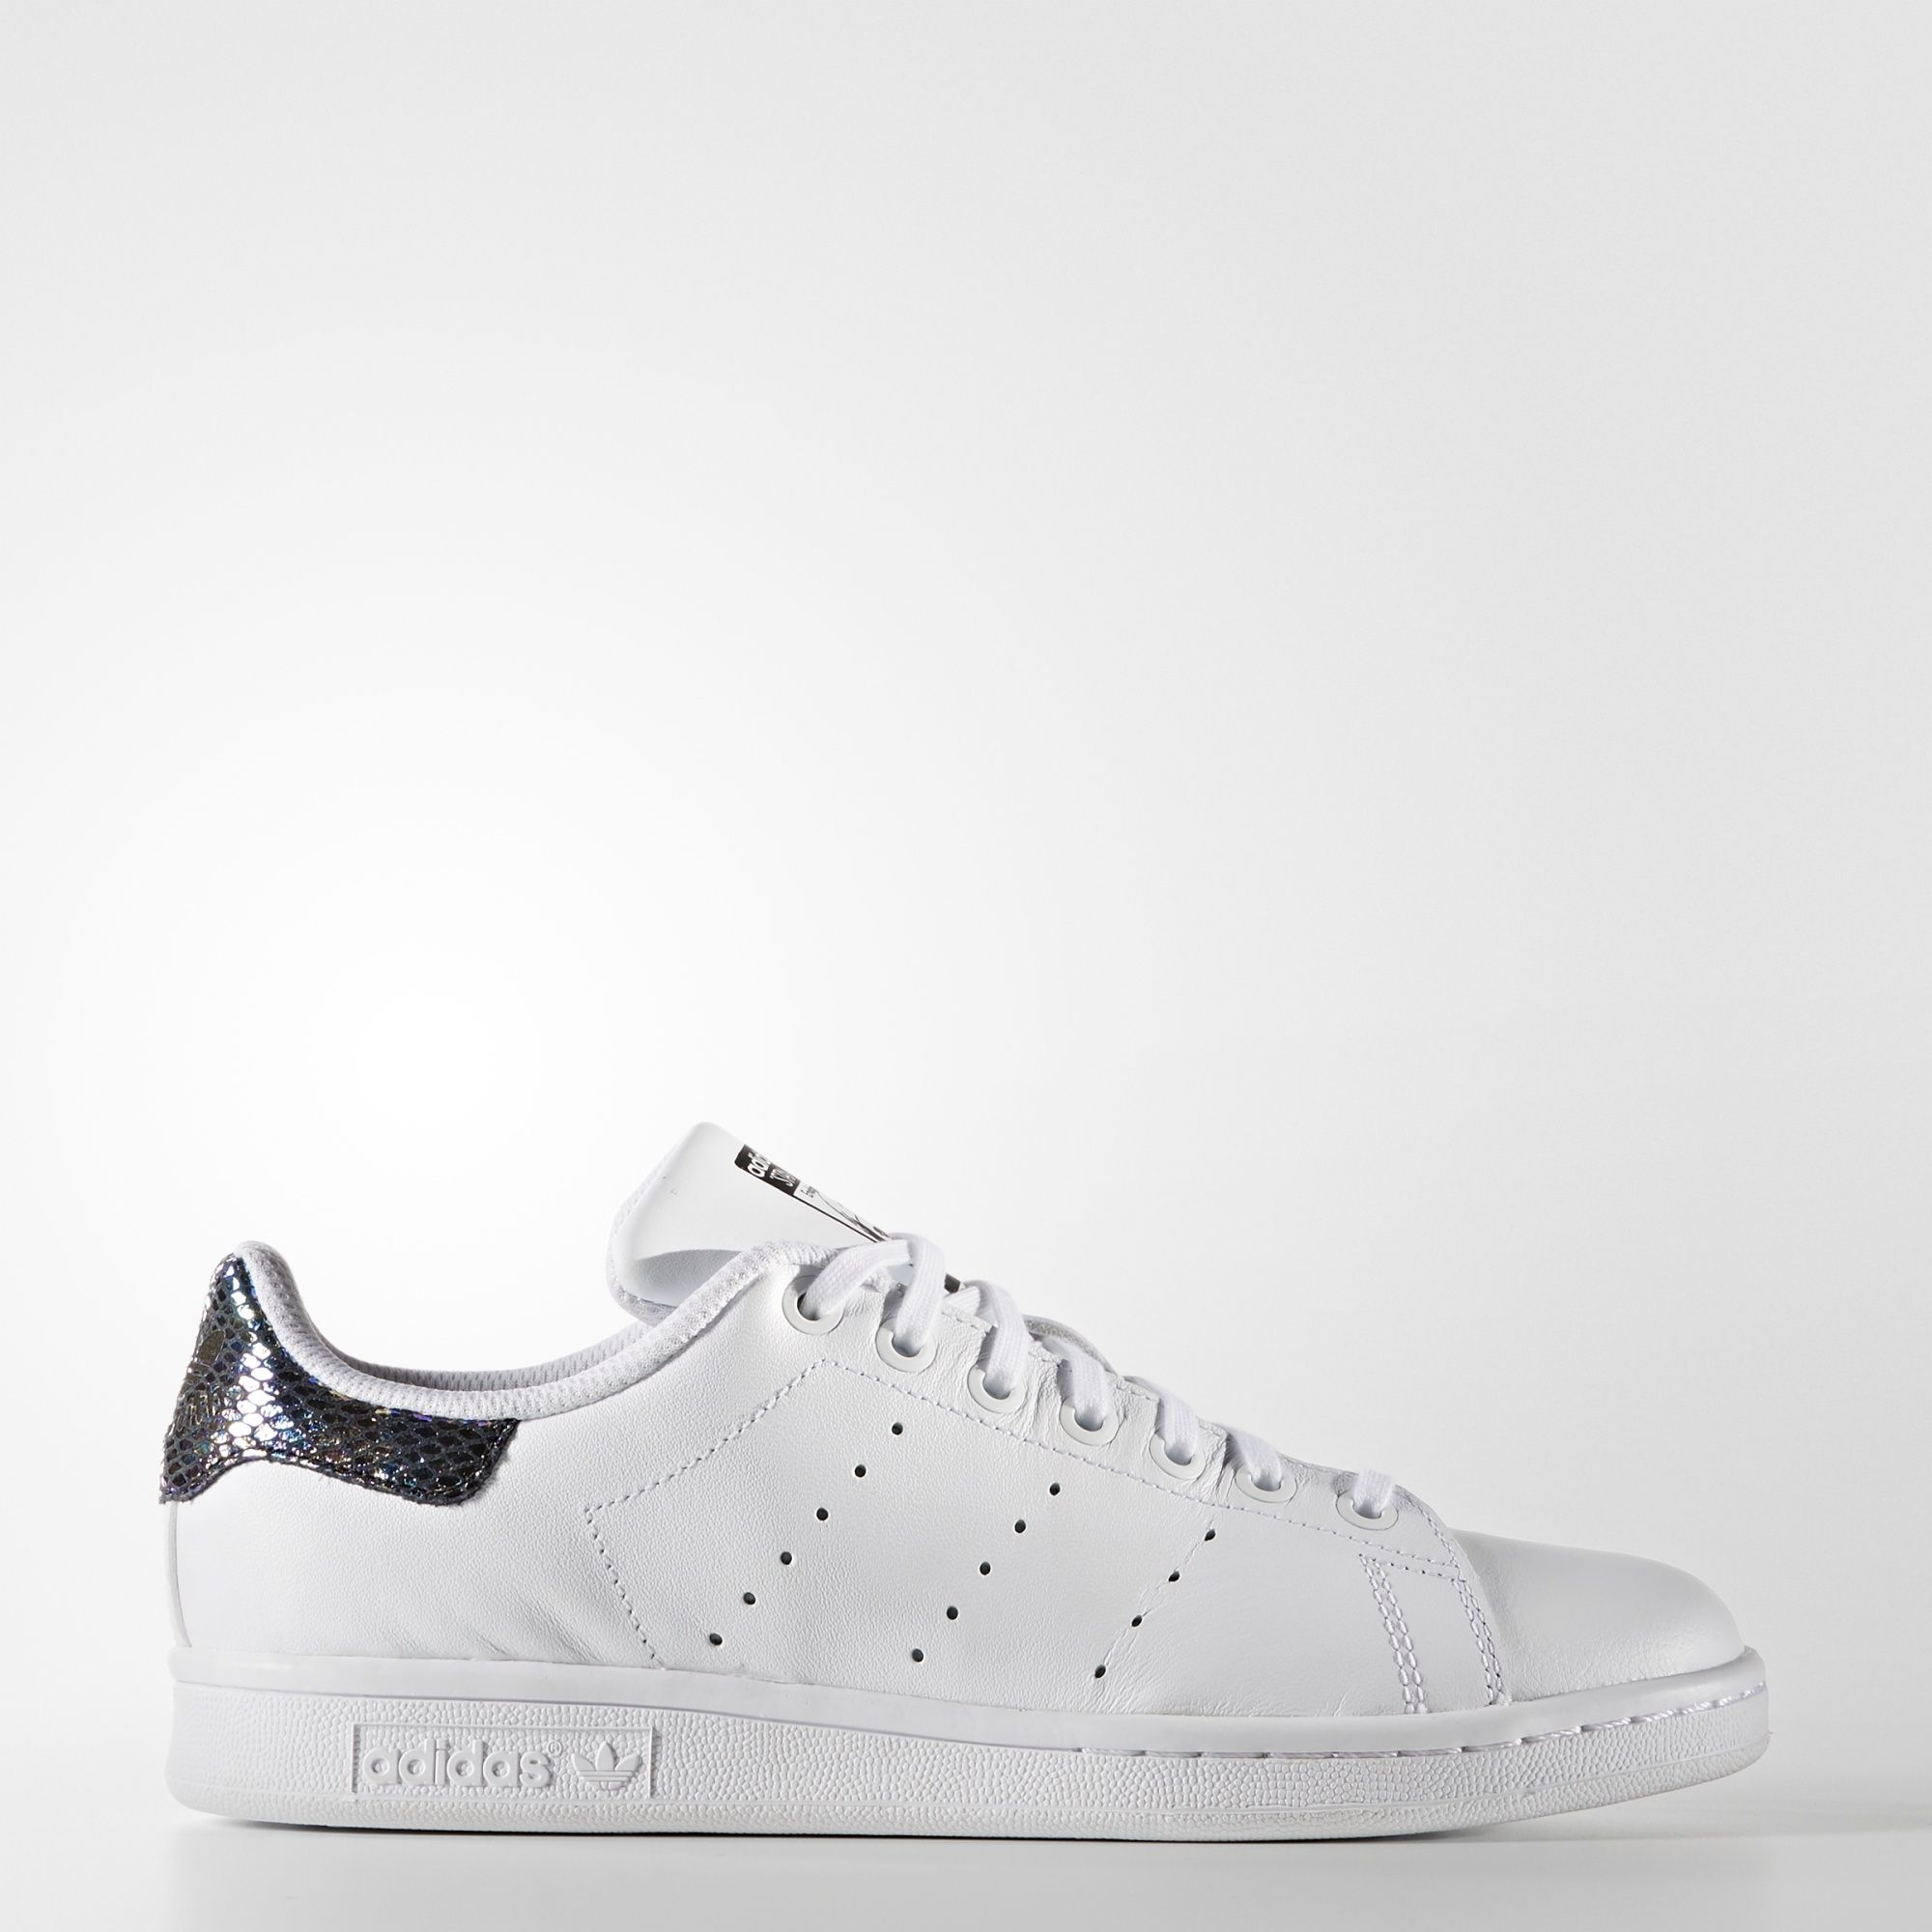 the best attitude 62cee 6f64a Chaussure Adidas Stan Smith, Chaussures Stan Smith, Collection De Chaussures,  Chaussures Adidas,